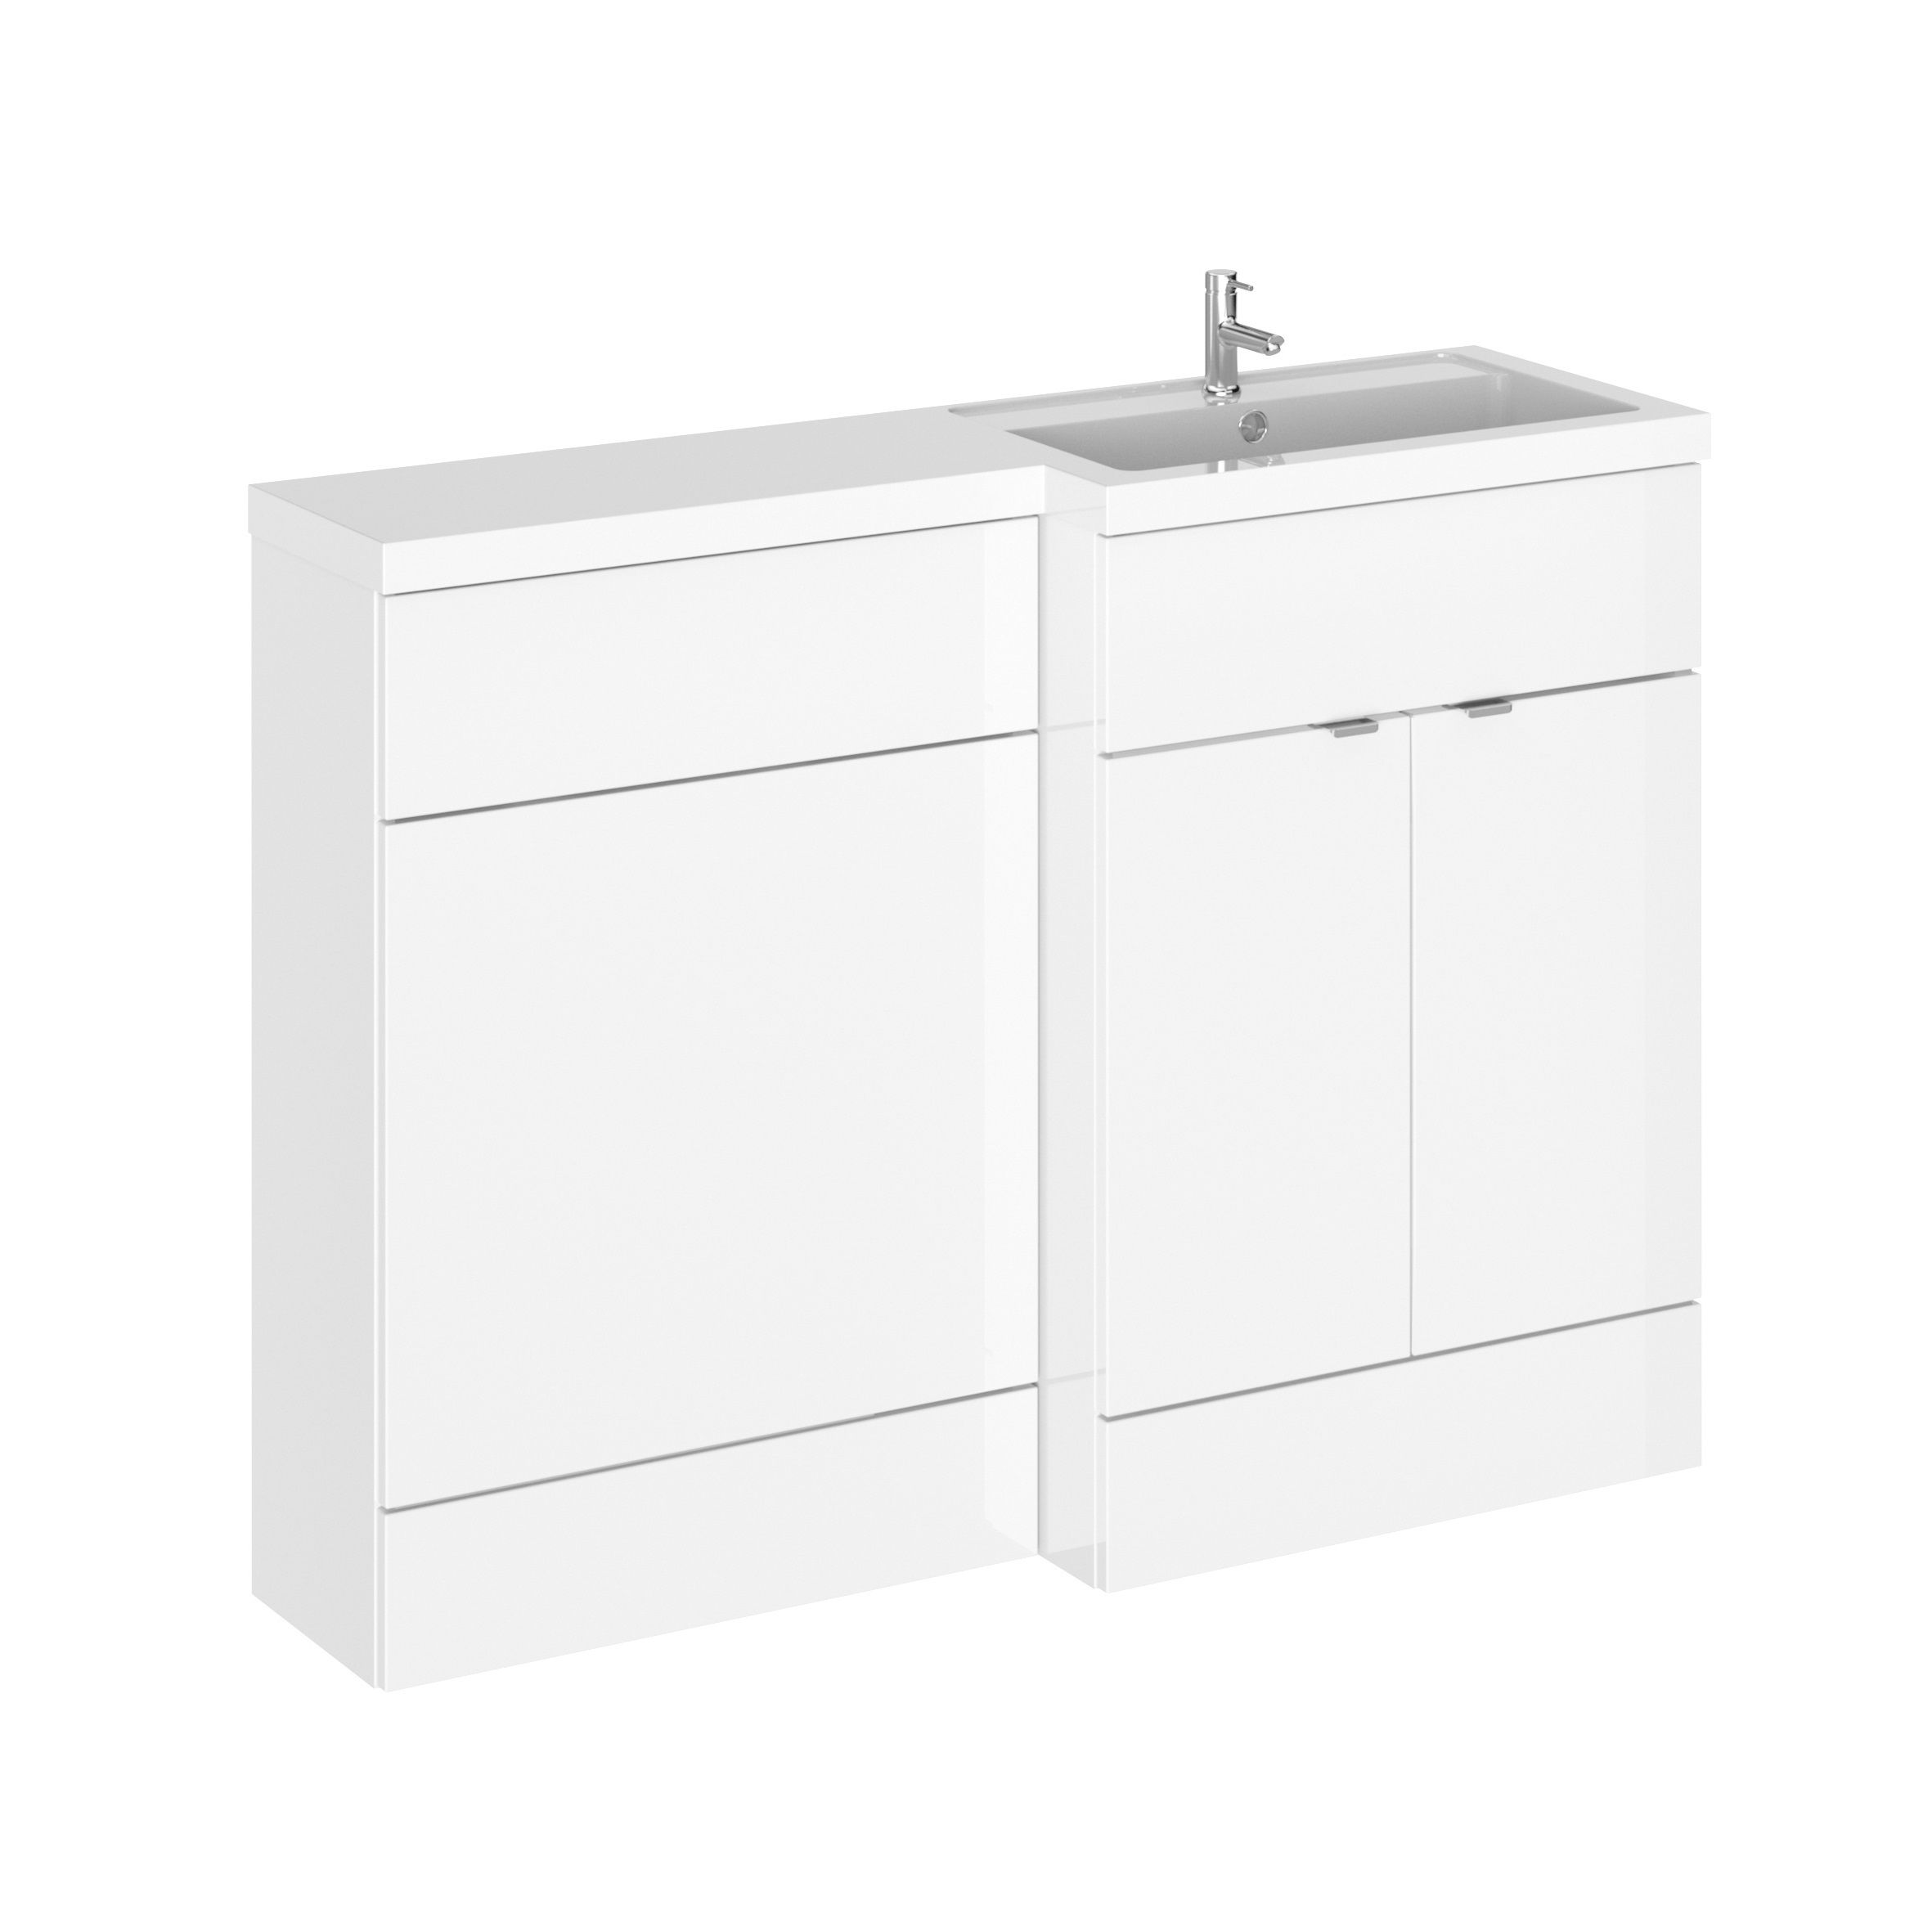 Hudson Reed Fusion Combination Furniture Basin White Gloss 1205mm Right Hand Option A